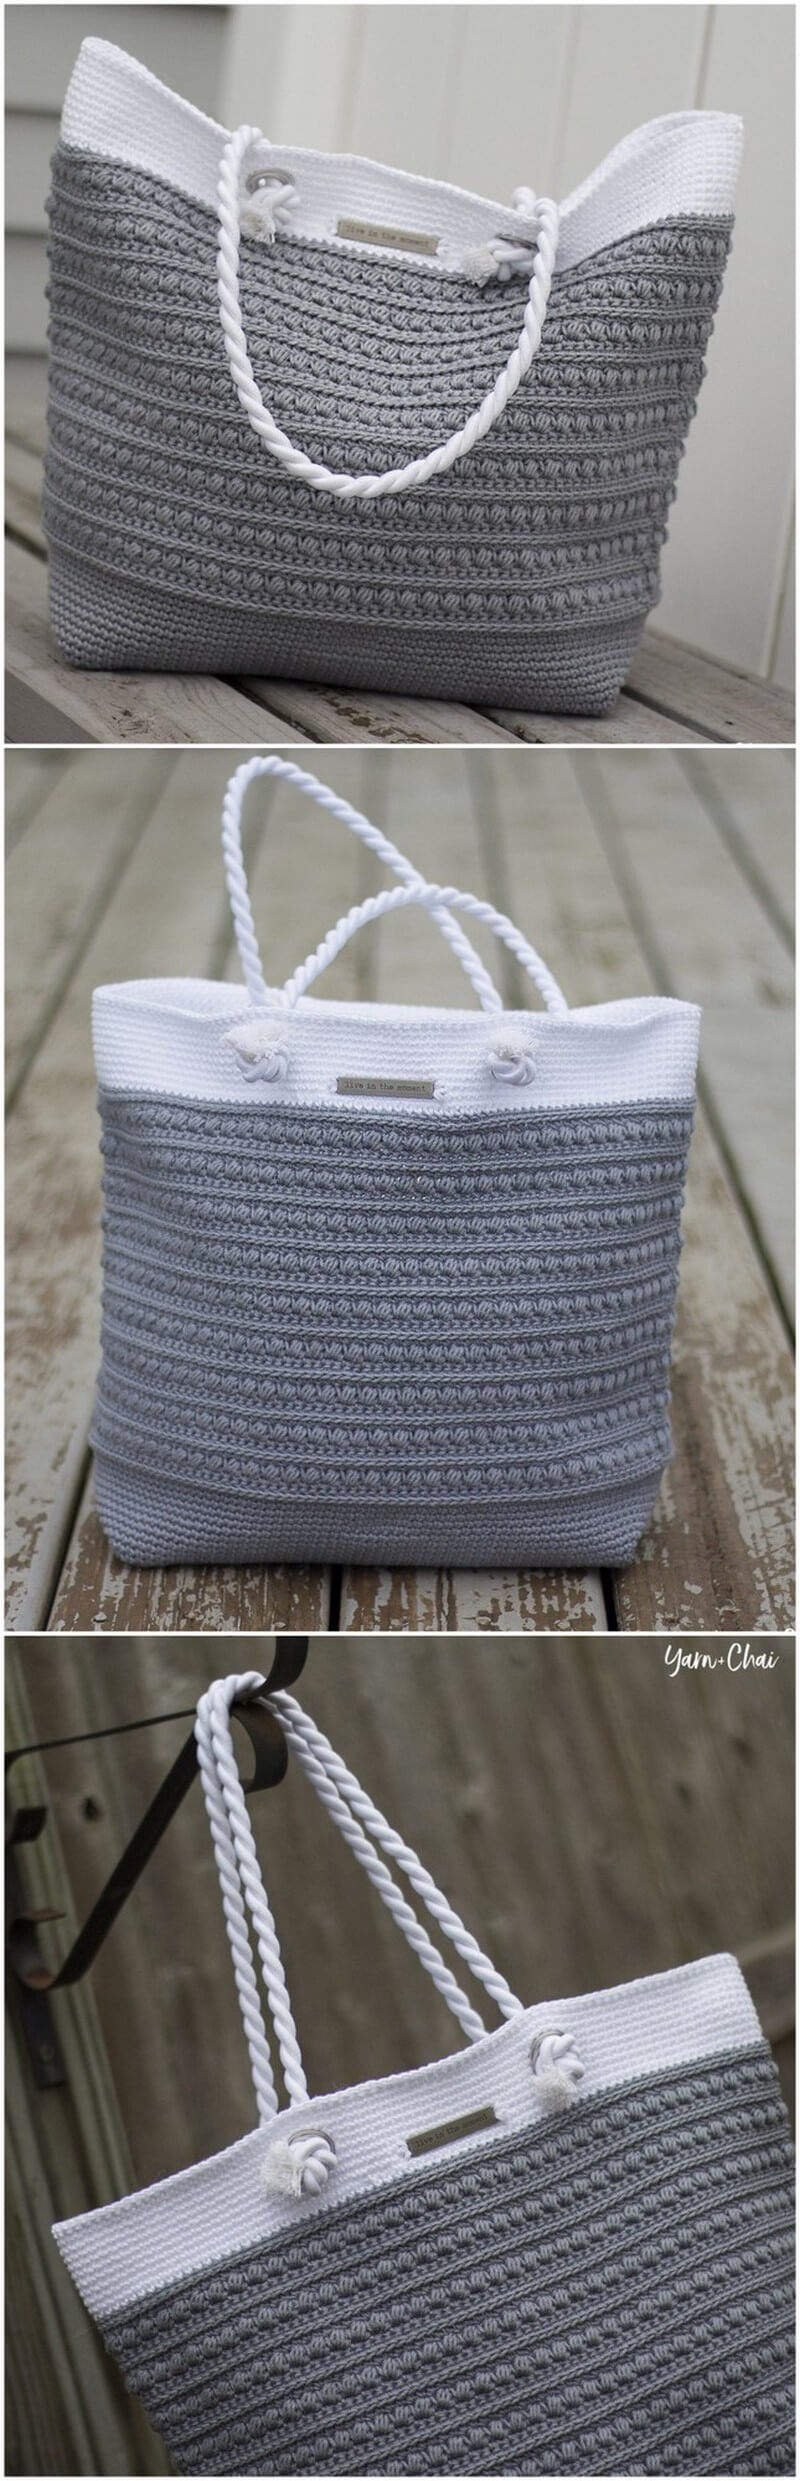 Crochet Bag Pattern (9)